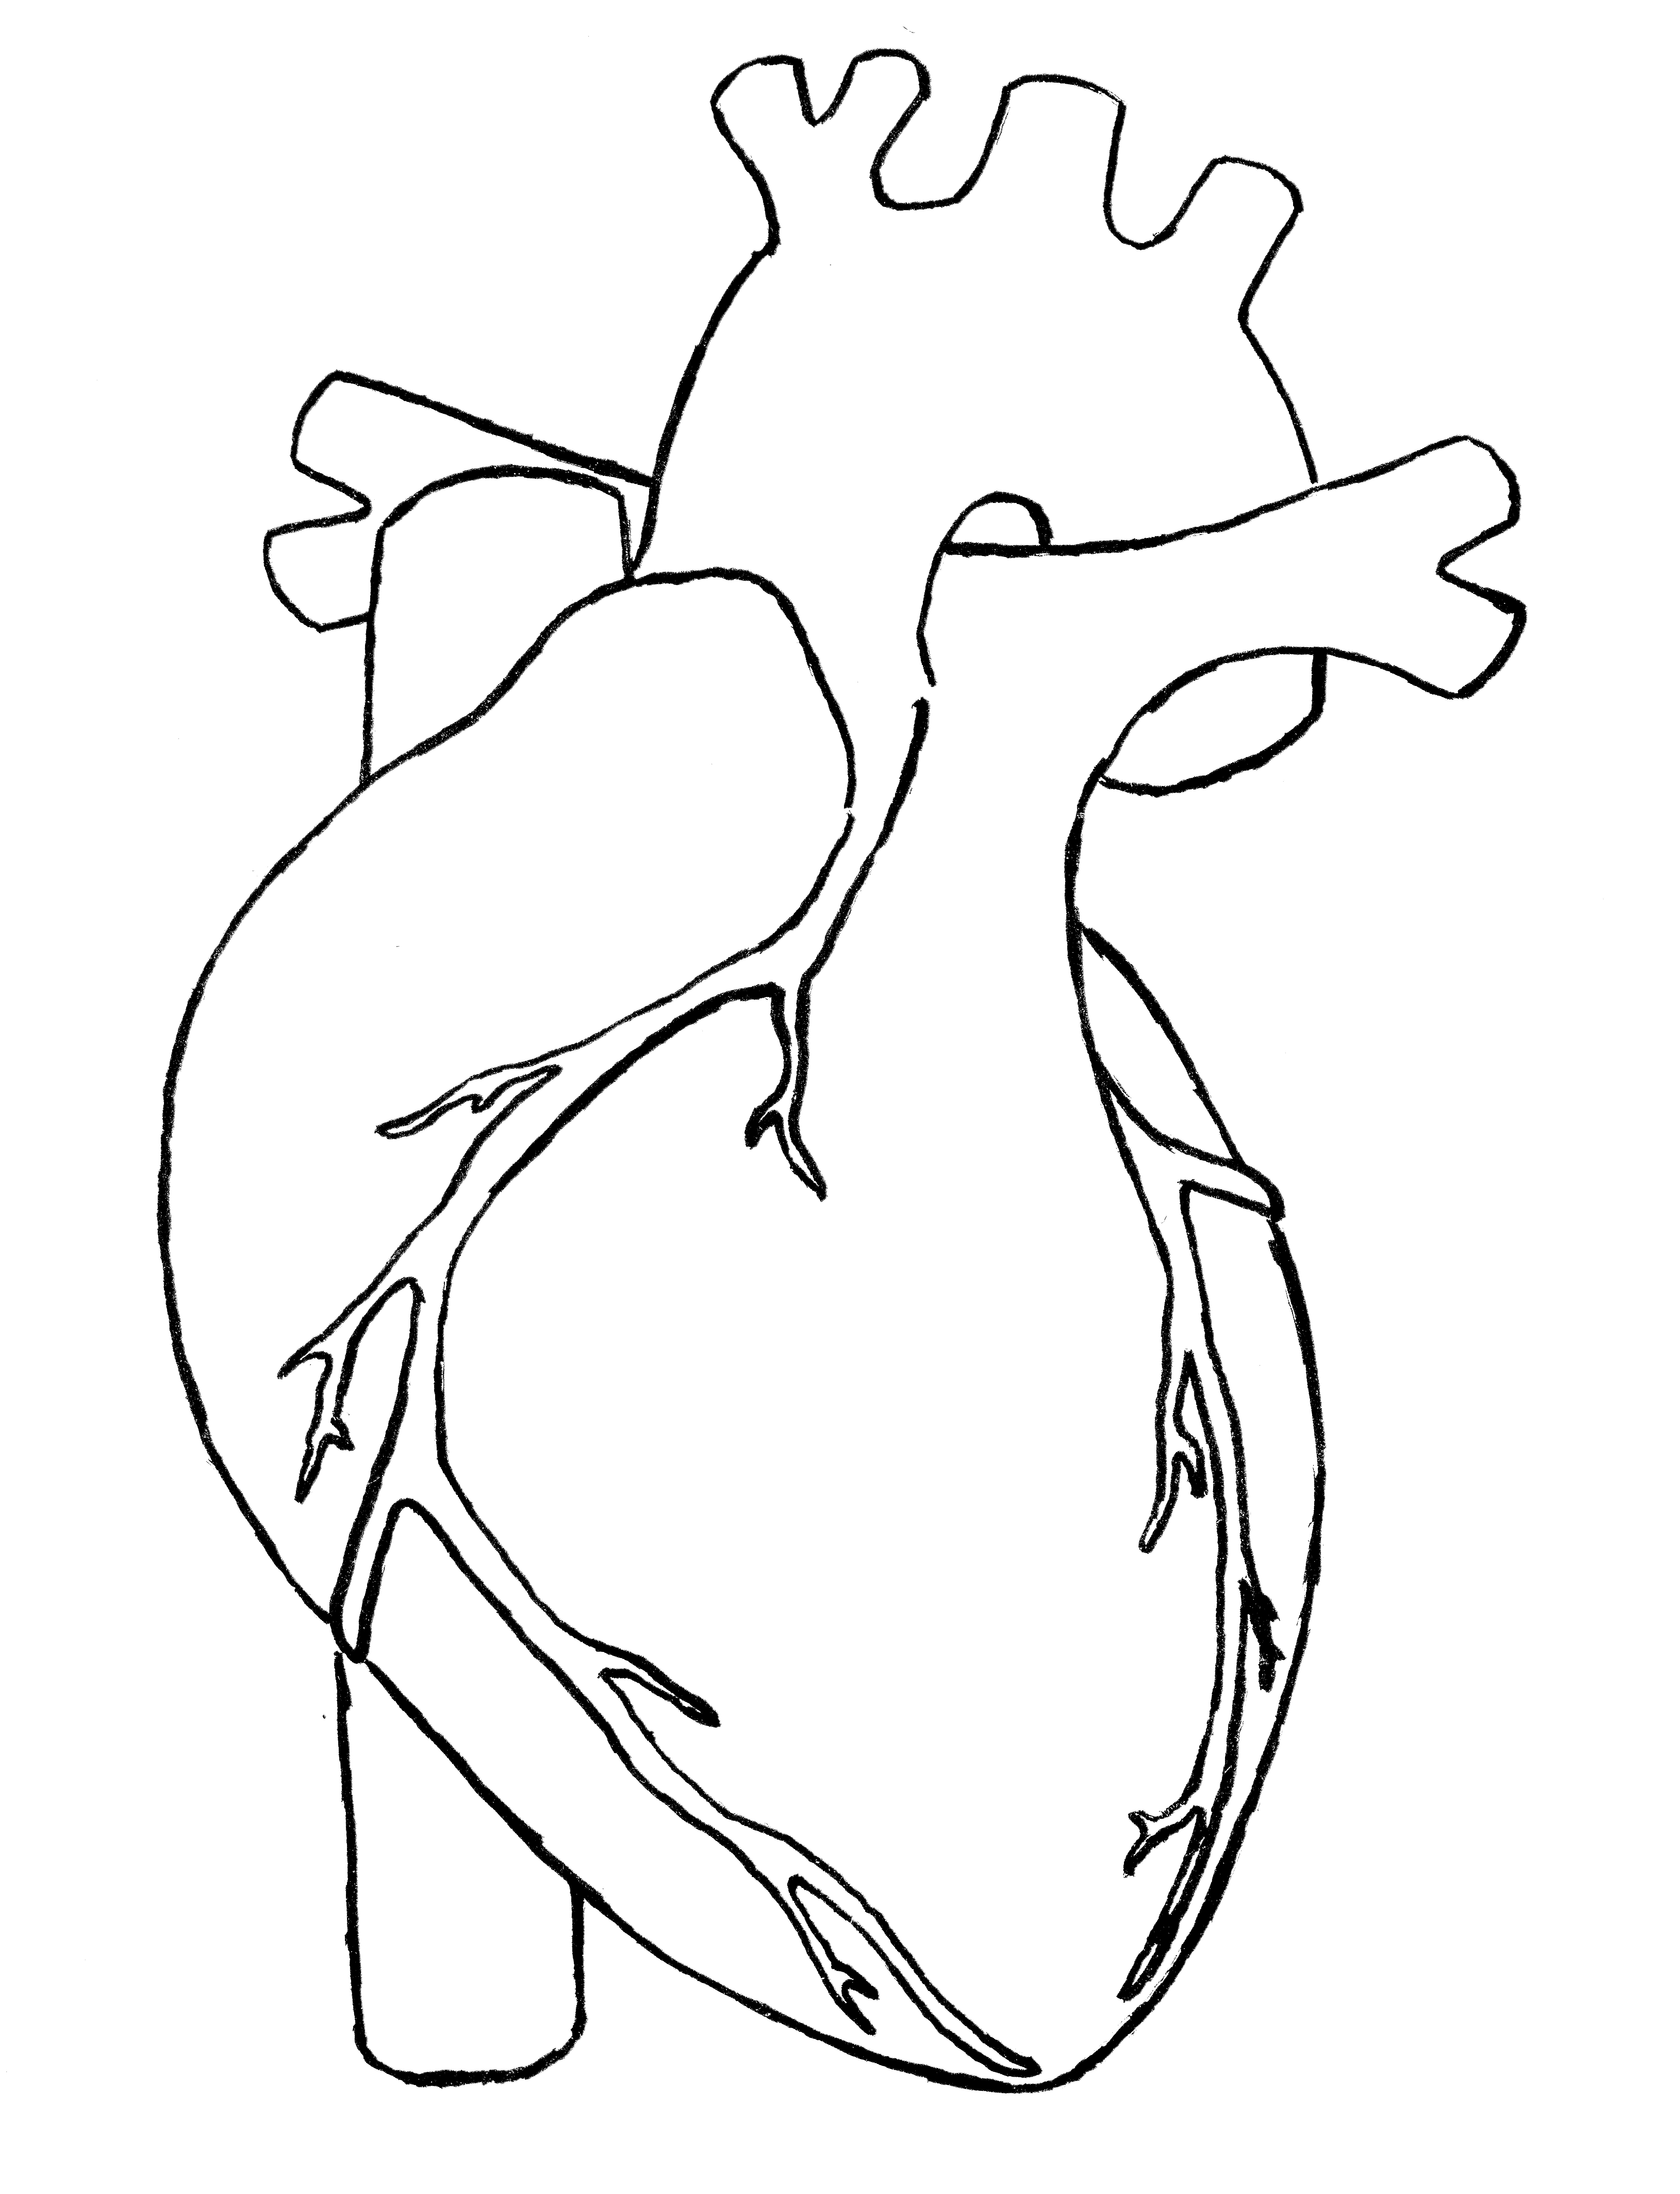 Free Human Heart Clipart Black And White, Download Free Clip.